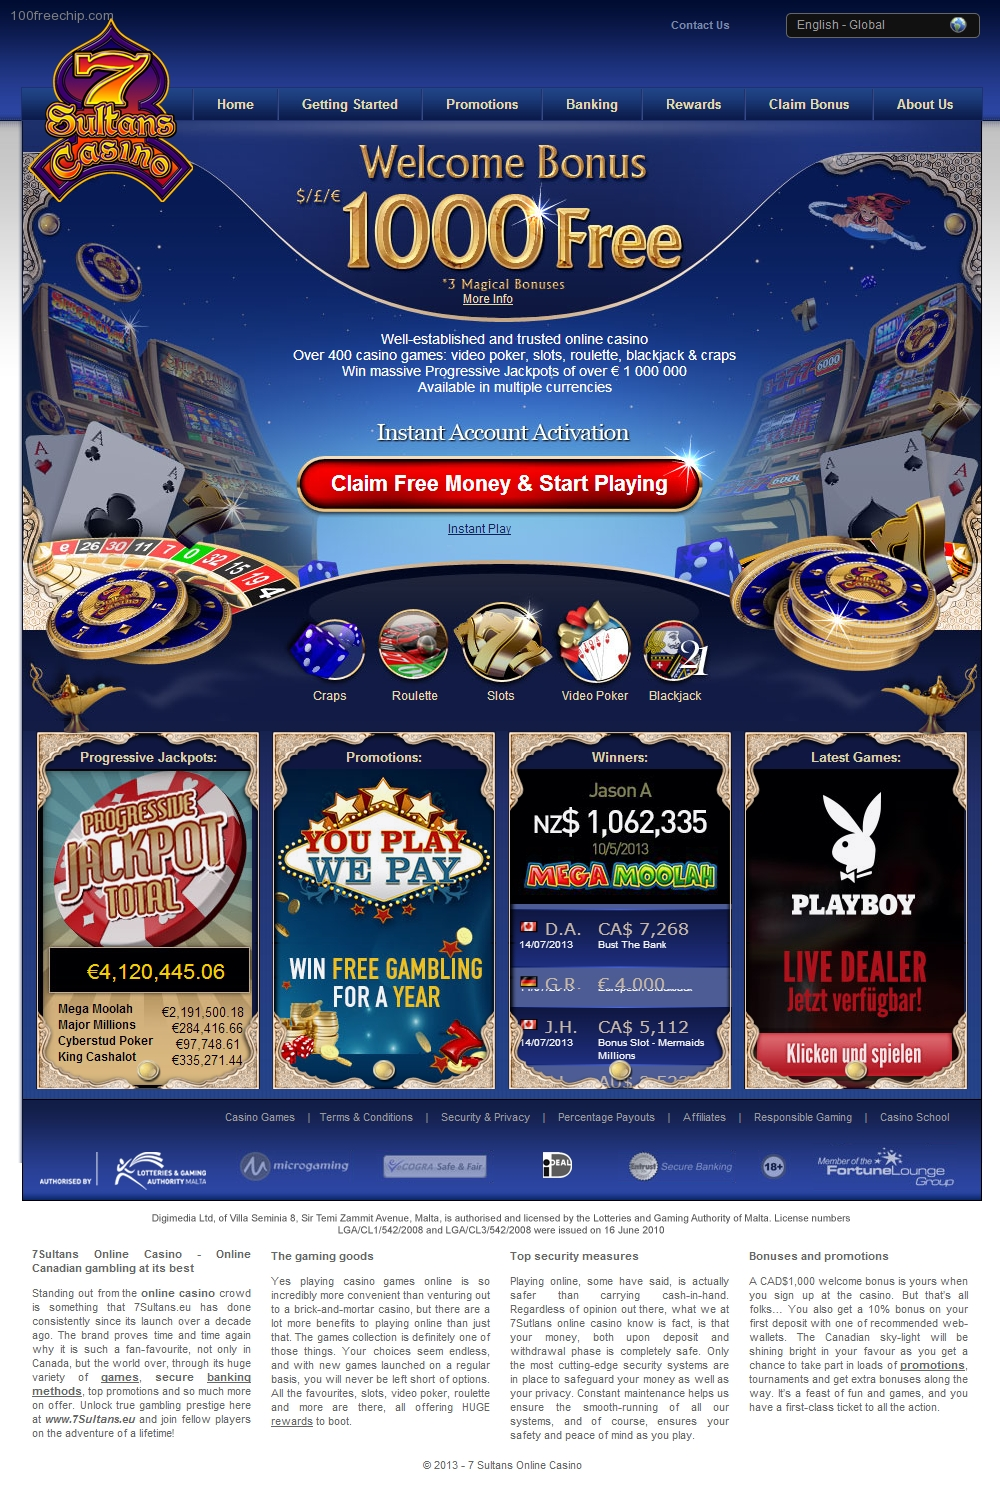 Mbs casino jackpot casino washington coast